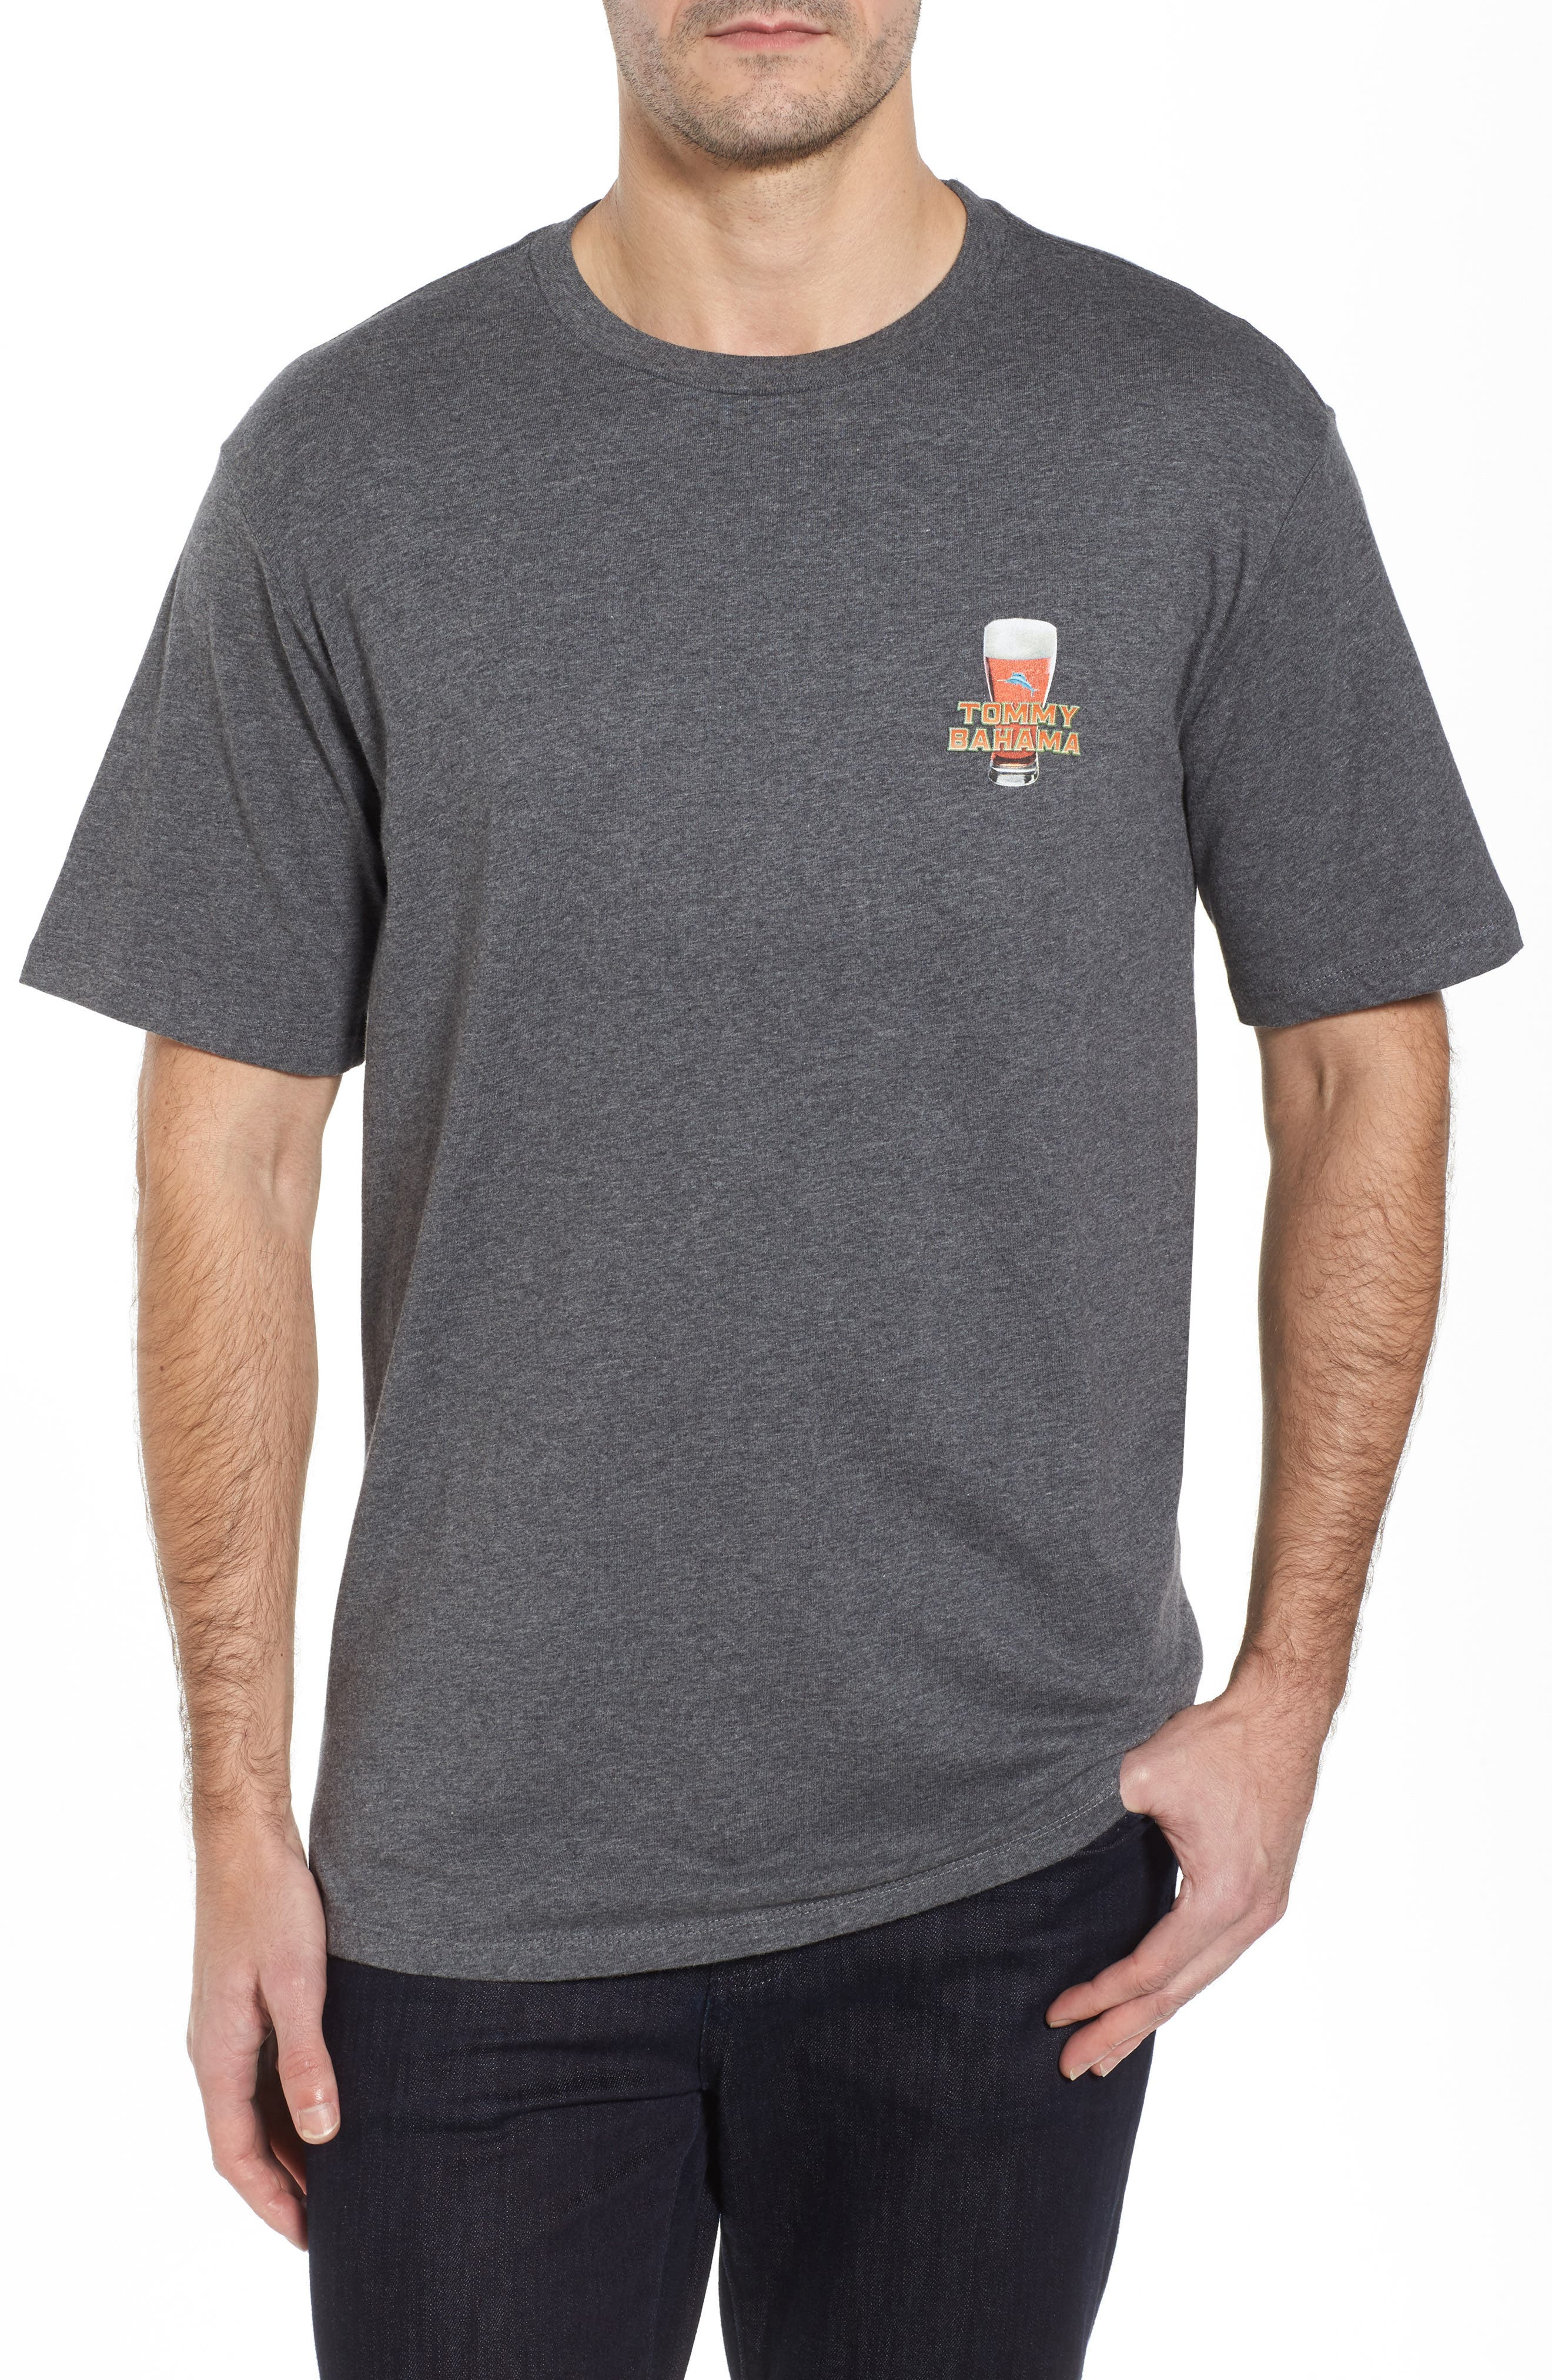 Room with a Brew T-Shirt,                         Main,                         color, 050